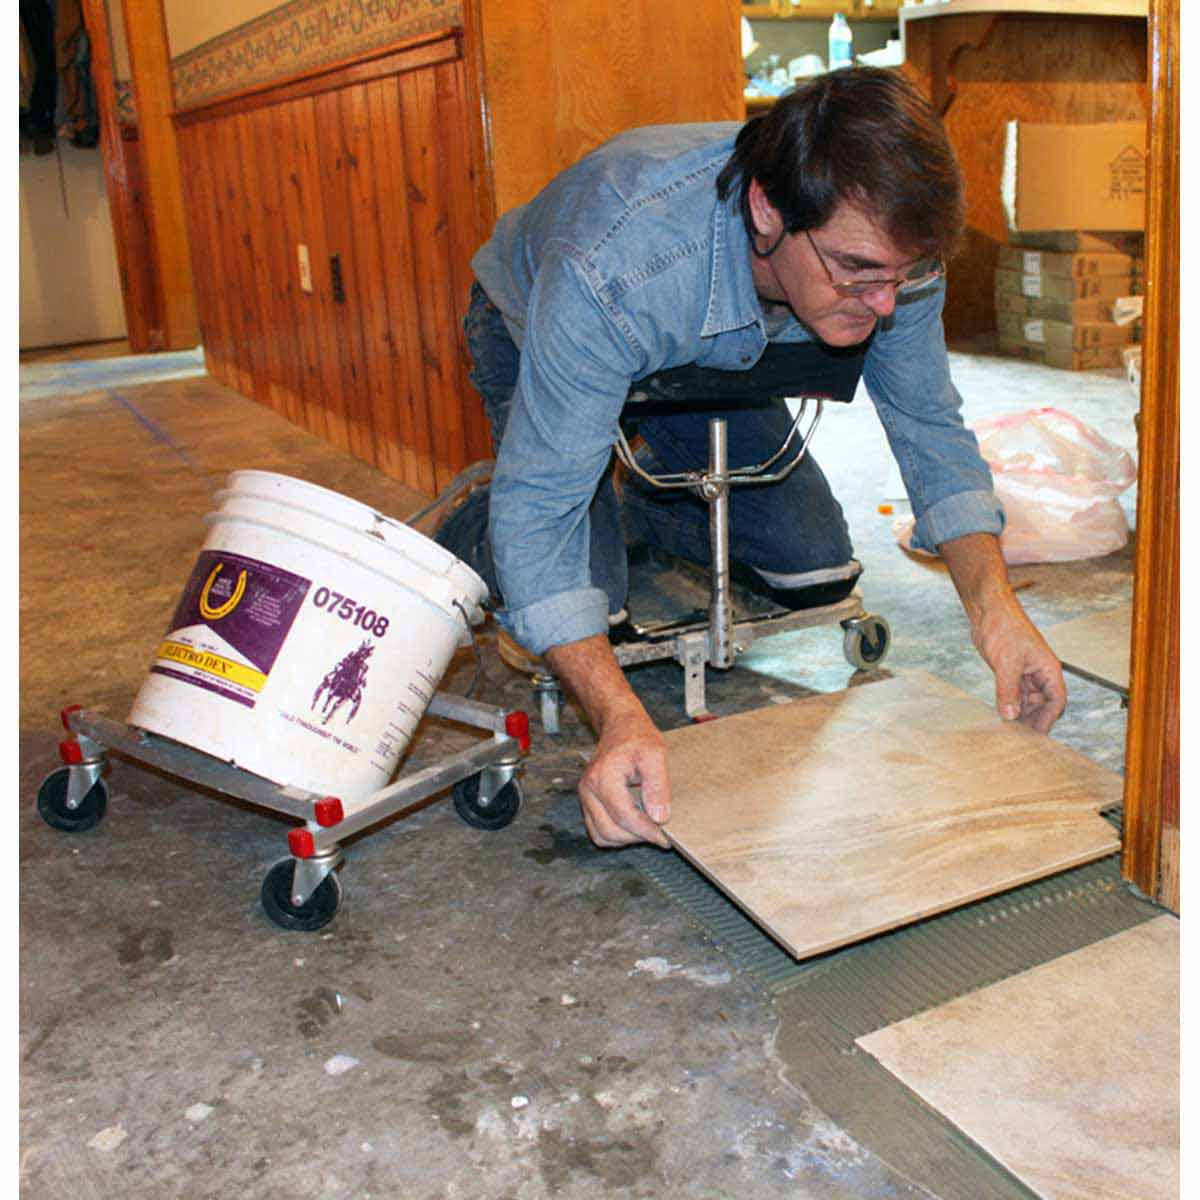 Easy Tile Install Racatac Rolling Knee Pads